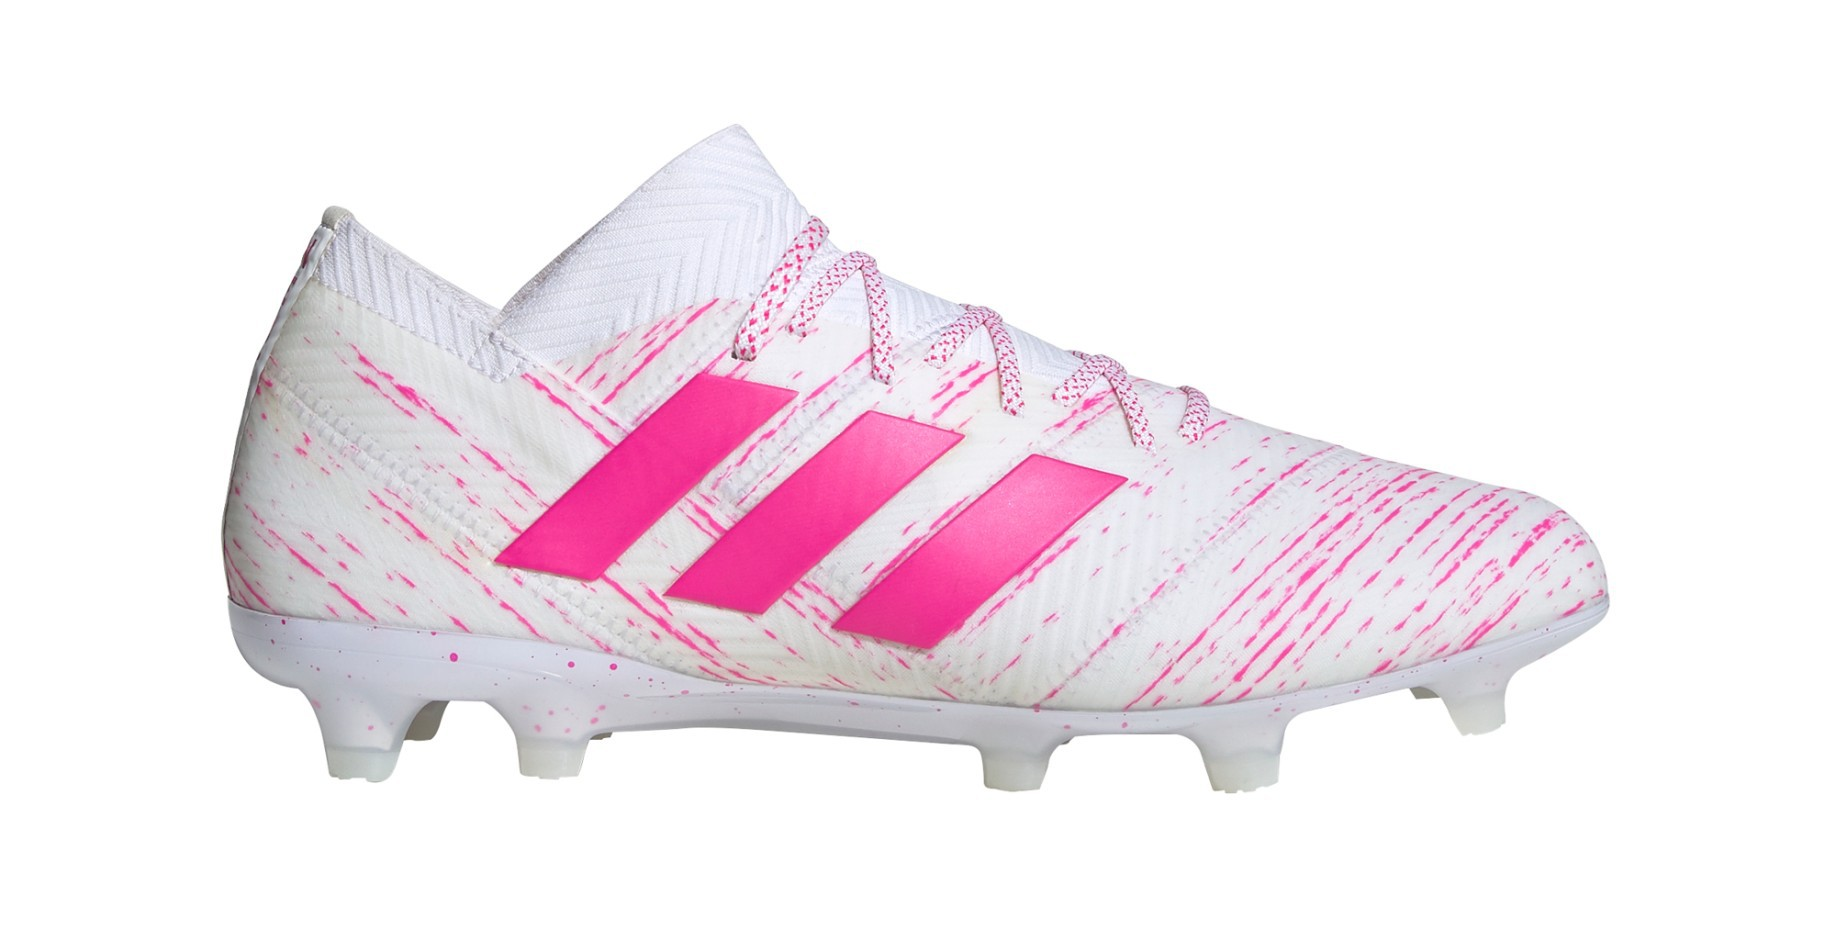 seta pollo alquitrán  Adidas Football boots Nemeziz 18.1 FG Up of the Pack colore White Pink -  Adidas - SportIT.com